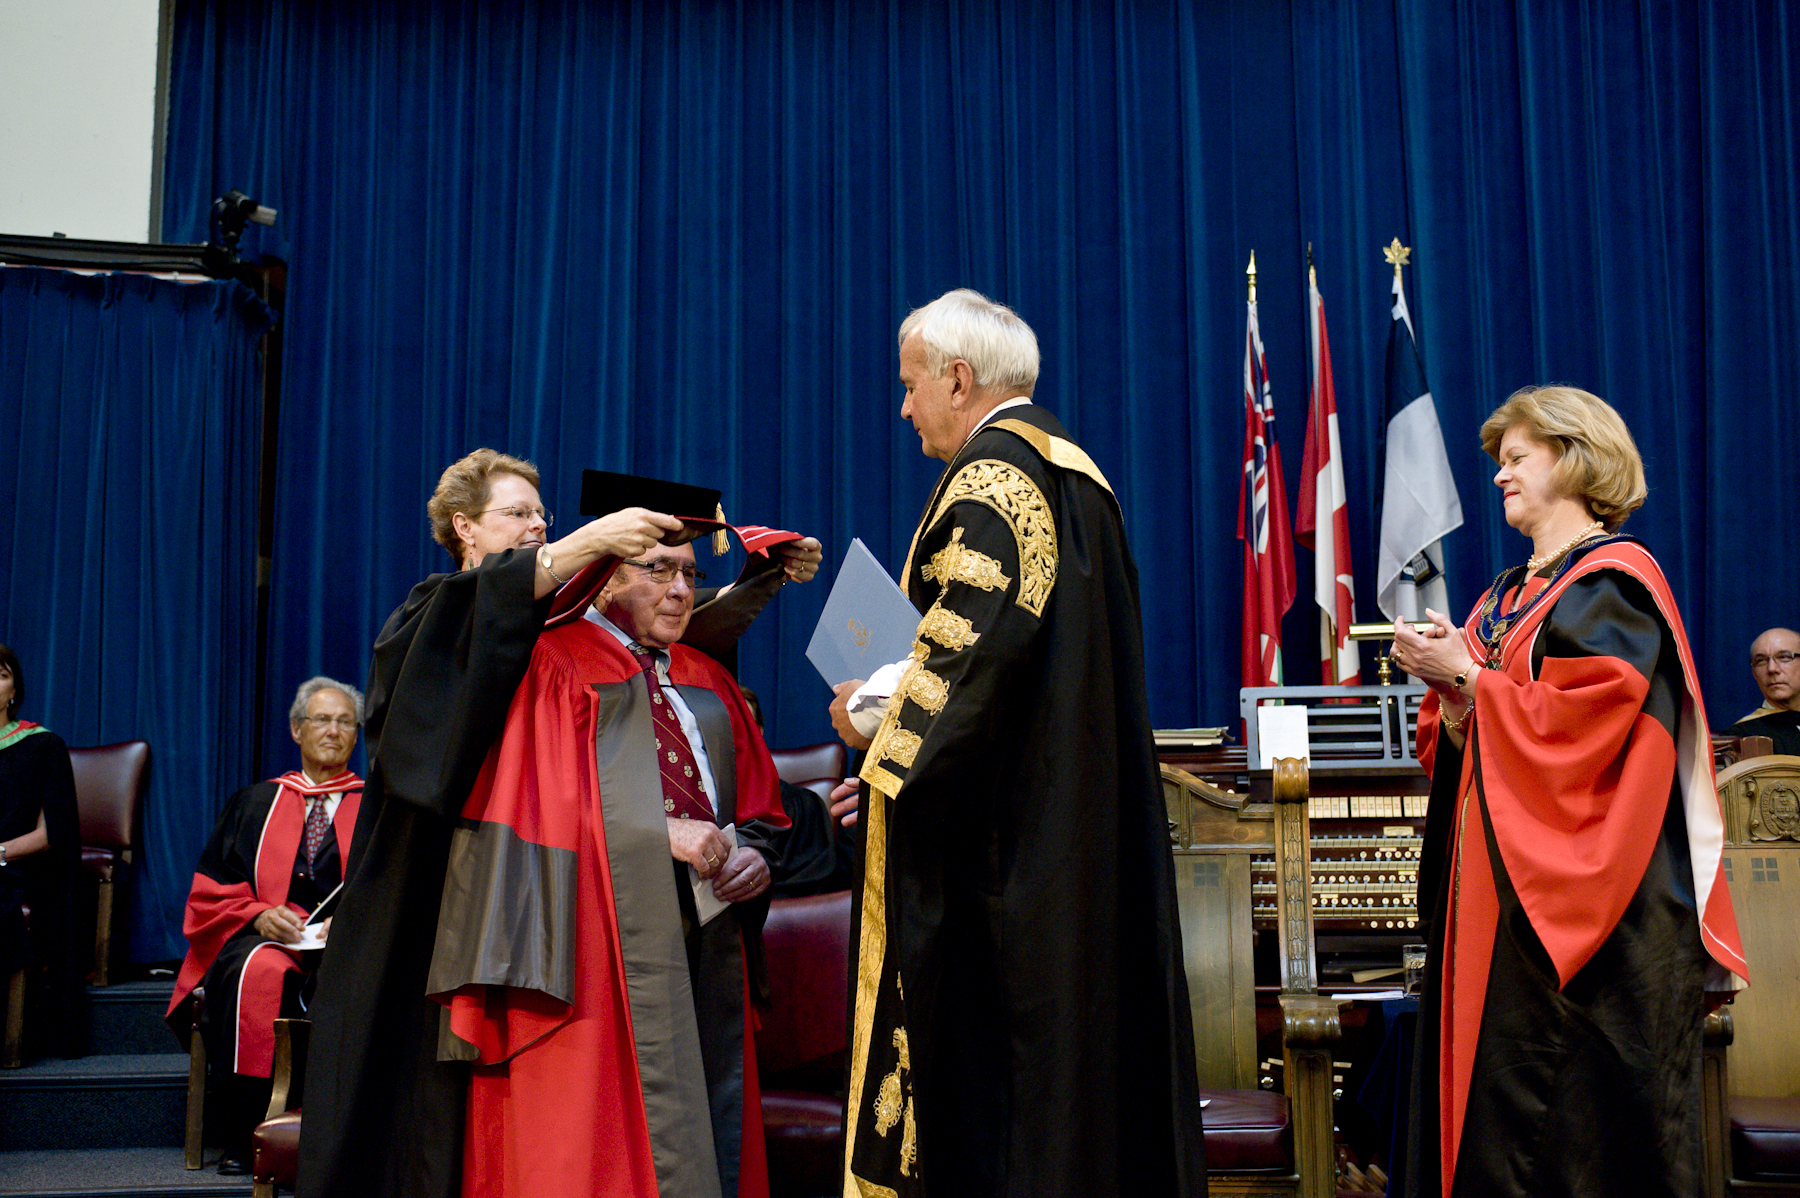 Prof. Patricia Brubaker hoods Prof. Emeritus Mladen Vranic at honorary degree ceremony